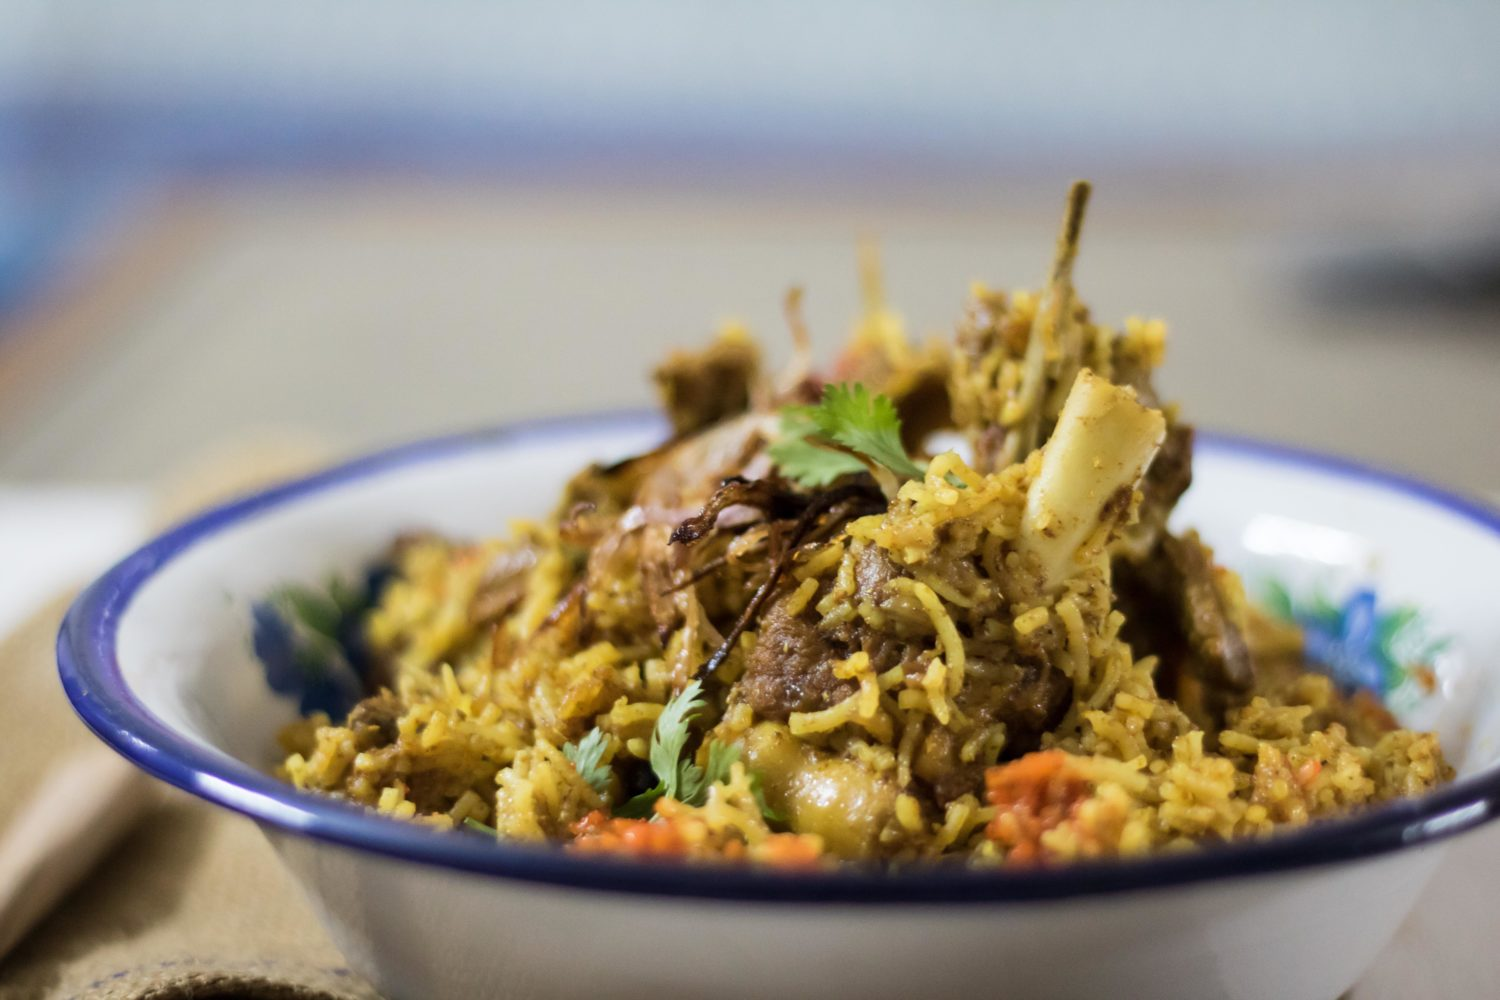 Coconut milk mutton biryani